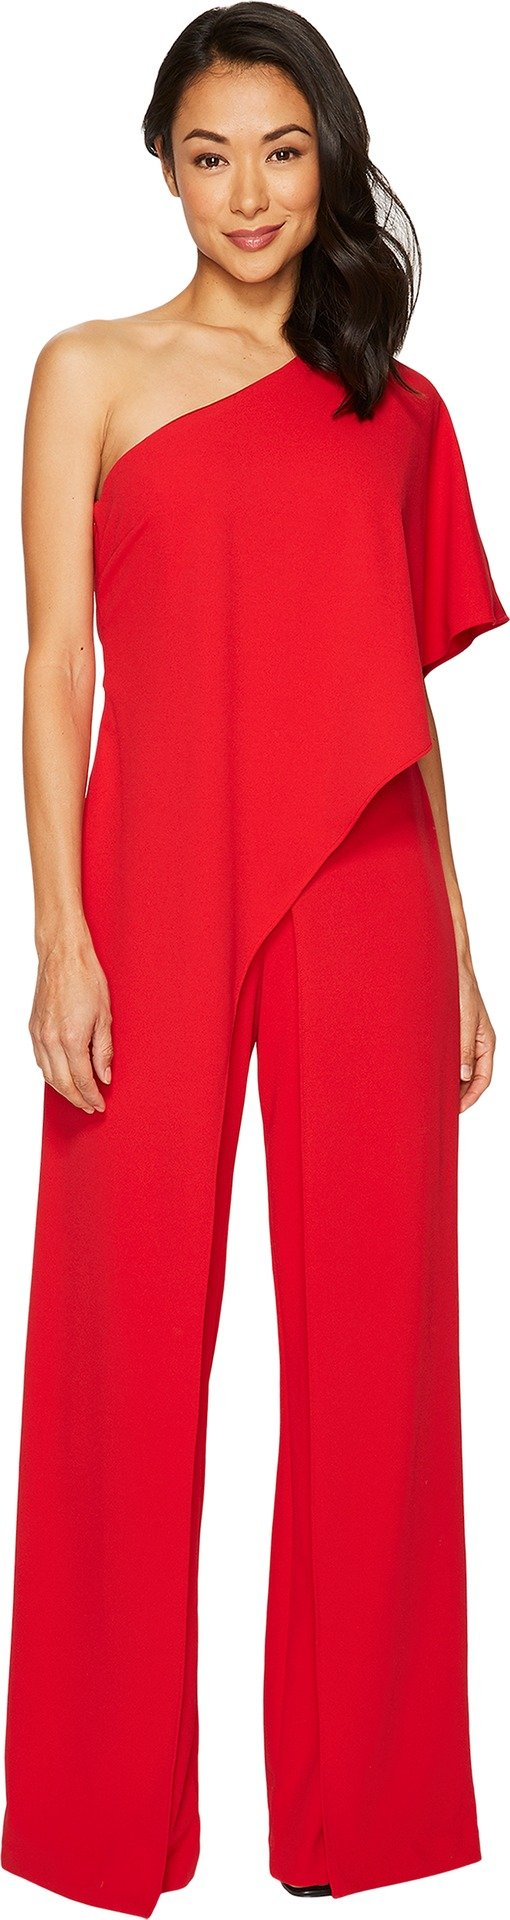 Adrianna Papell Women's One Shoulder Jumpsuit Red 12